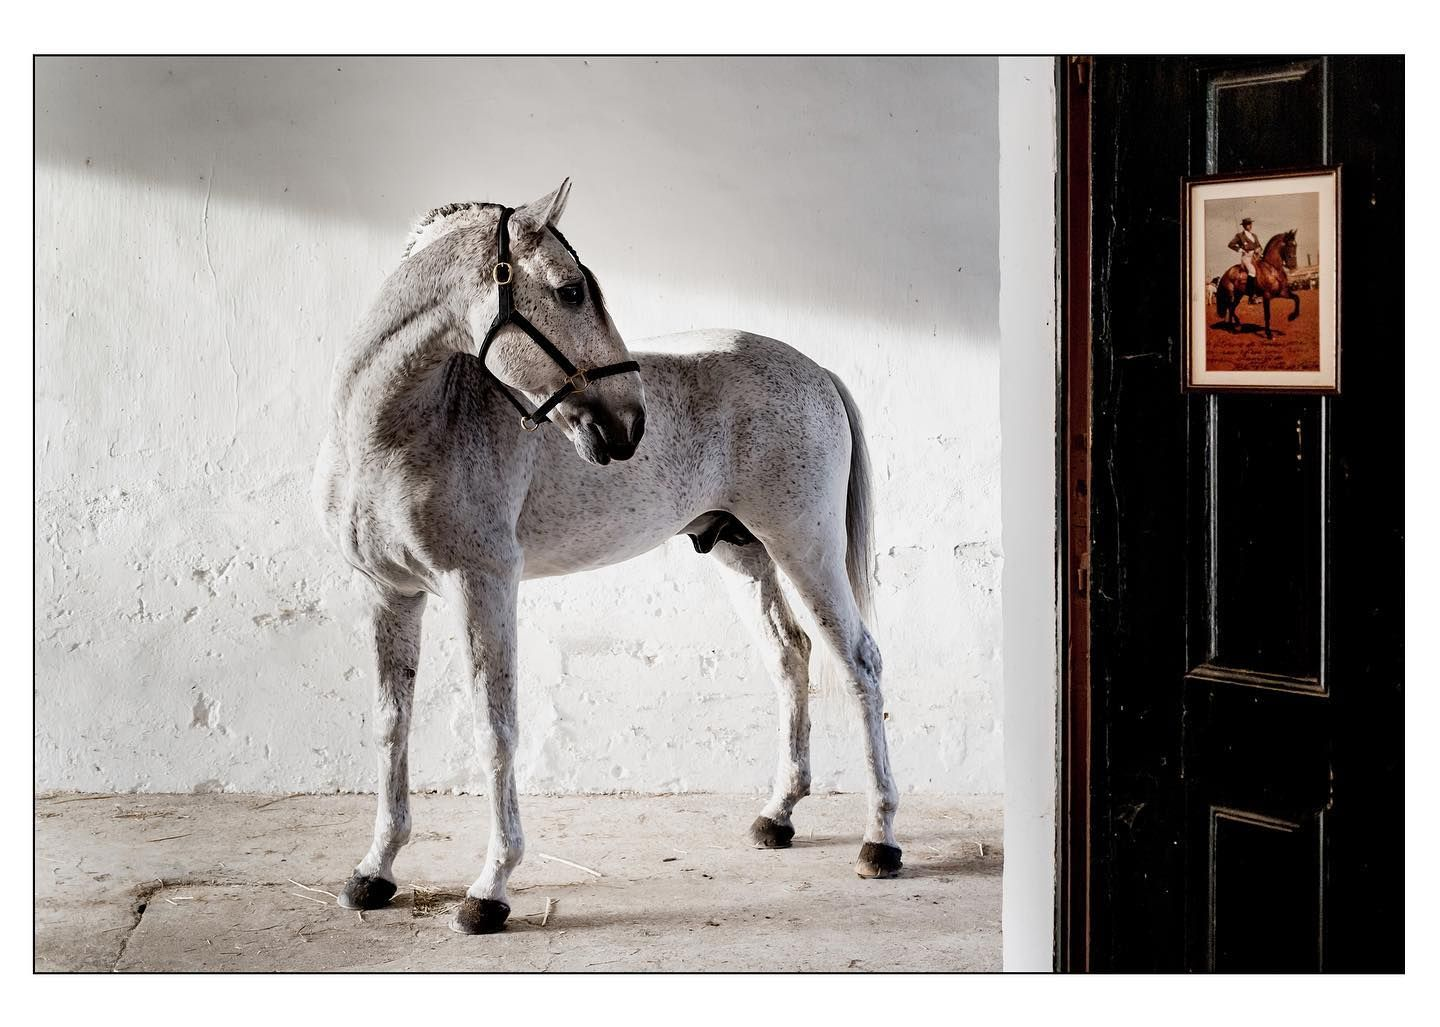 Do Not Look Back Golega Stable Stablelife Lusitano Greylusitano Equinephotography Lusitanien Horse Fnc Feira In 2020 Horses Equestrian Lifestyle Equestrian